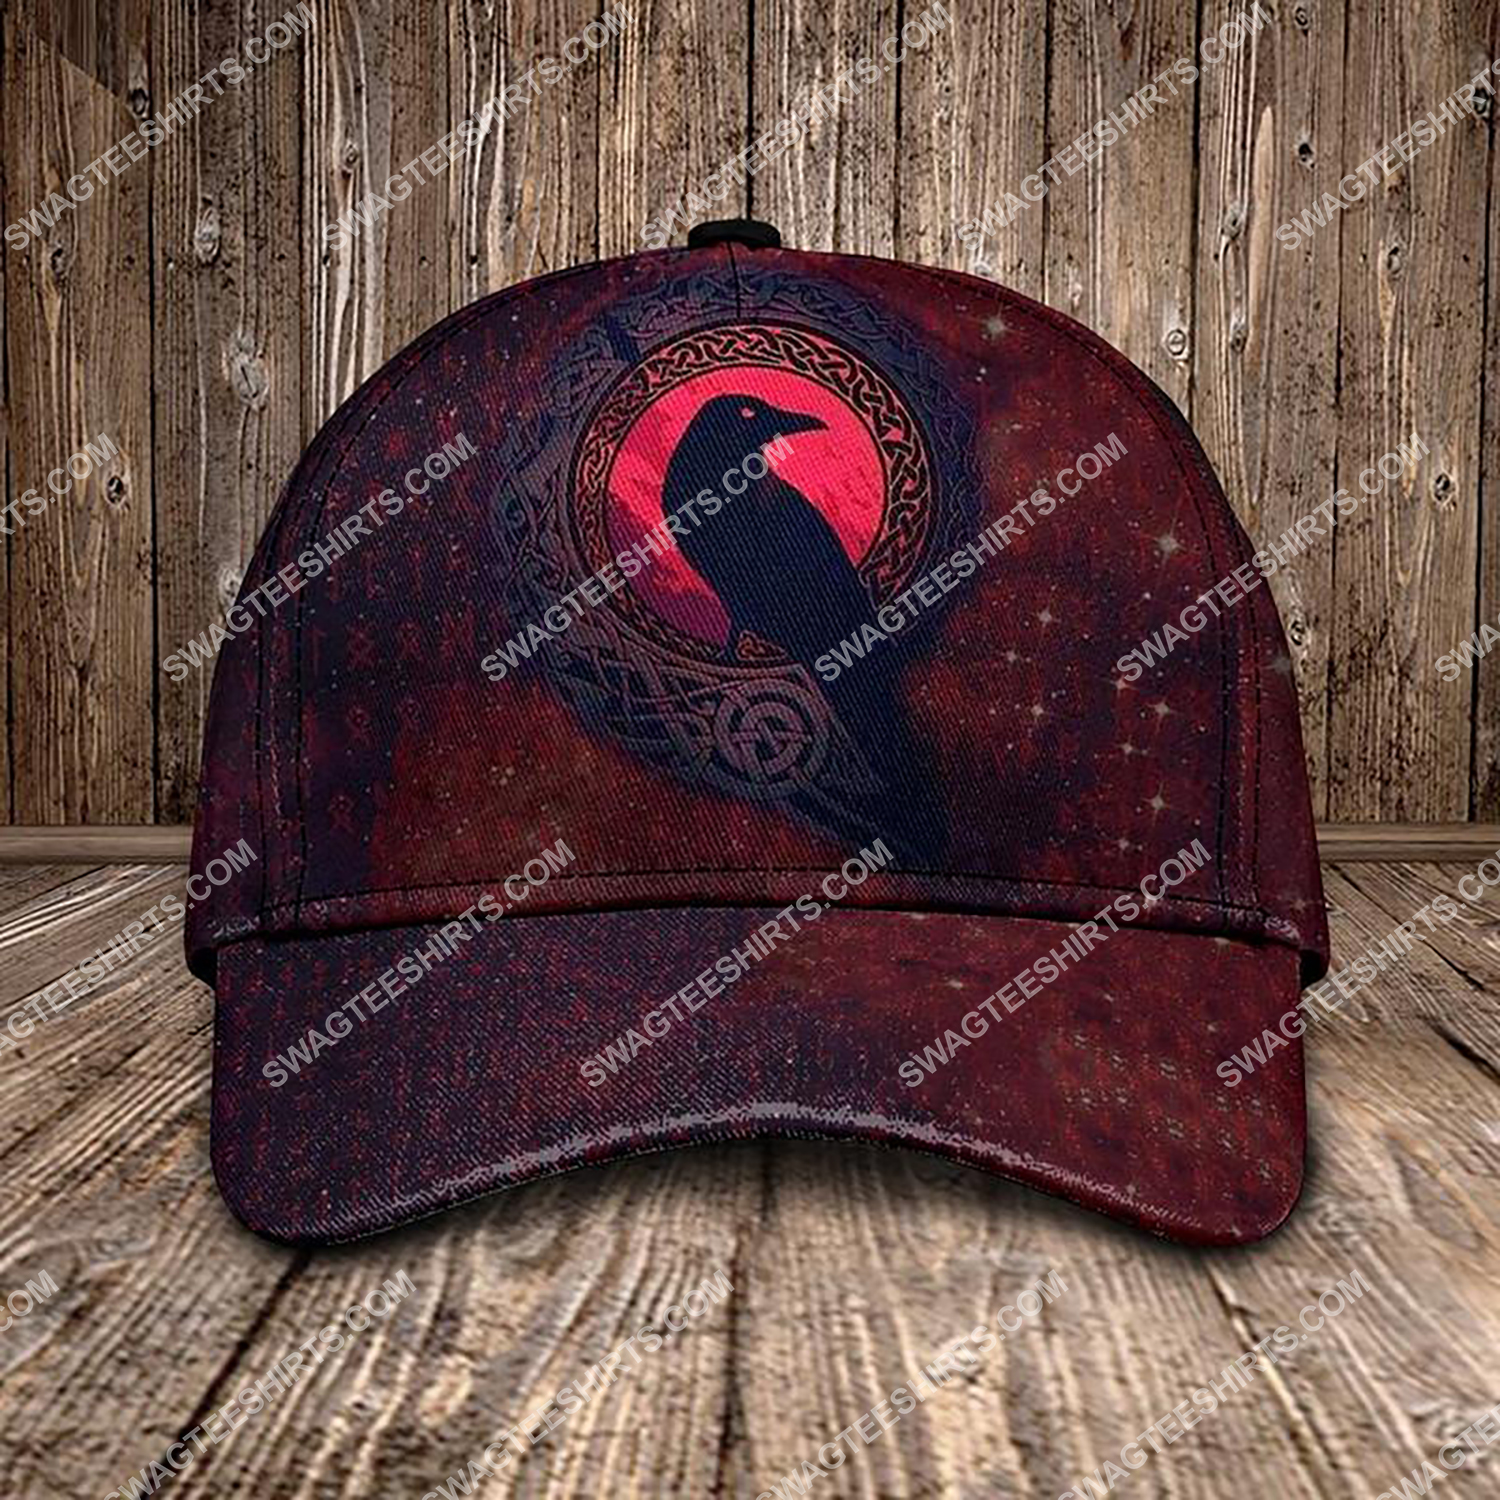 the raven viking all over printed classic cap 3 - Copy (2)